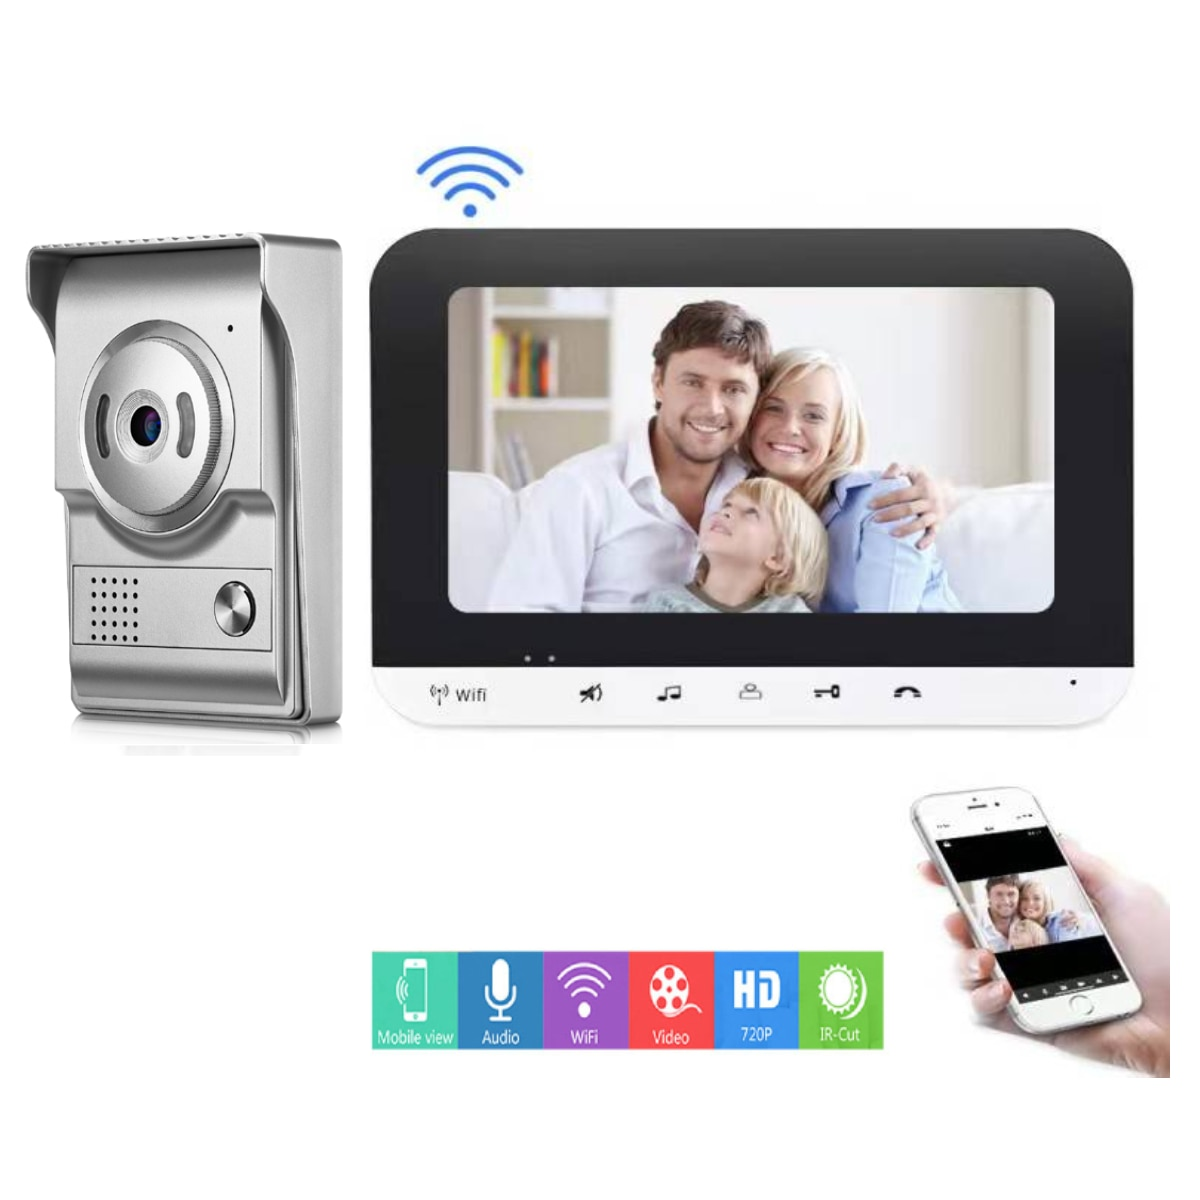 7 '' WIFI wireless call video intercom for home Monitor entry doorphone Doorbell with camera Outdoor